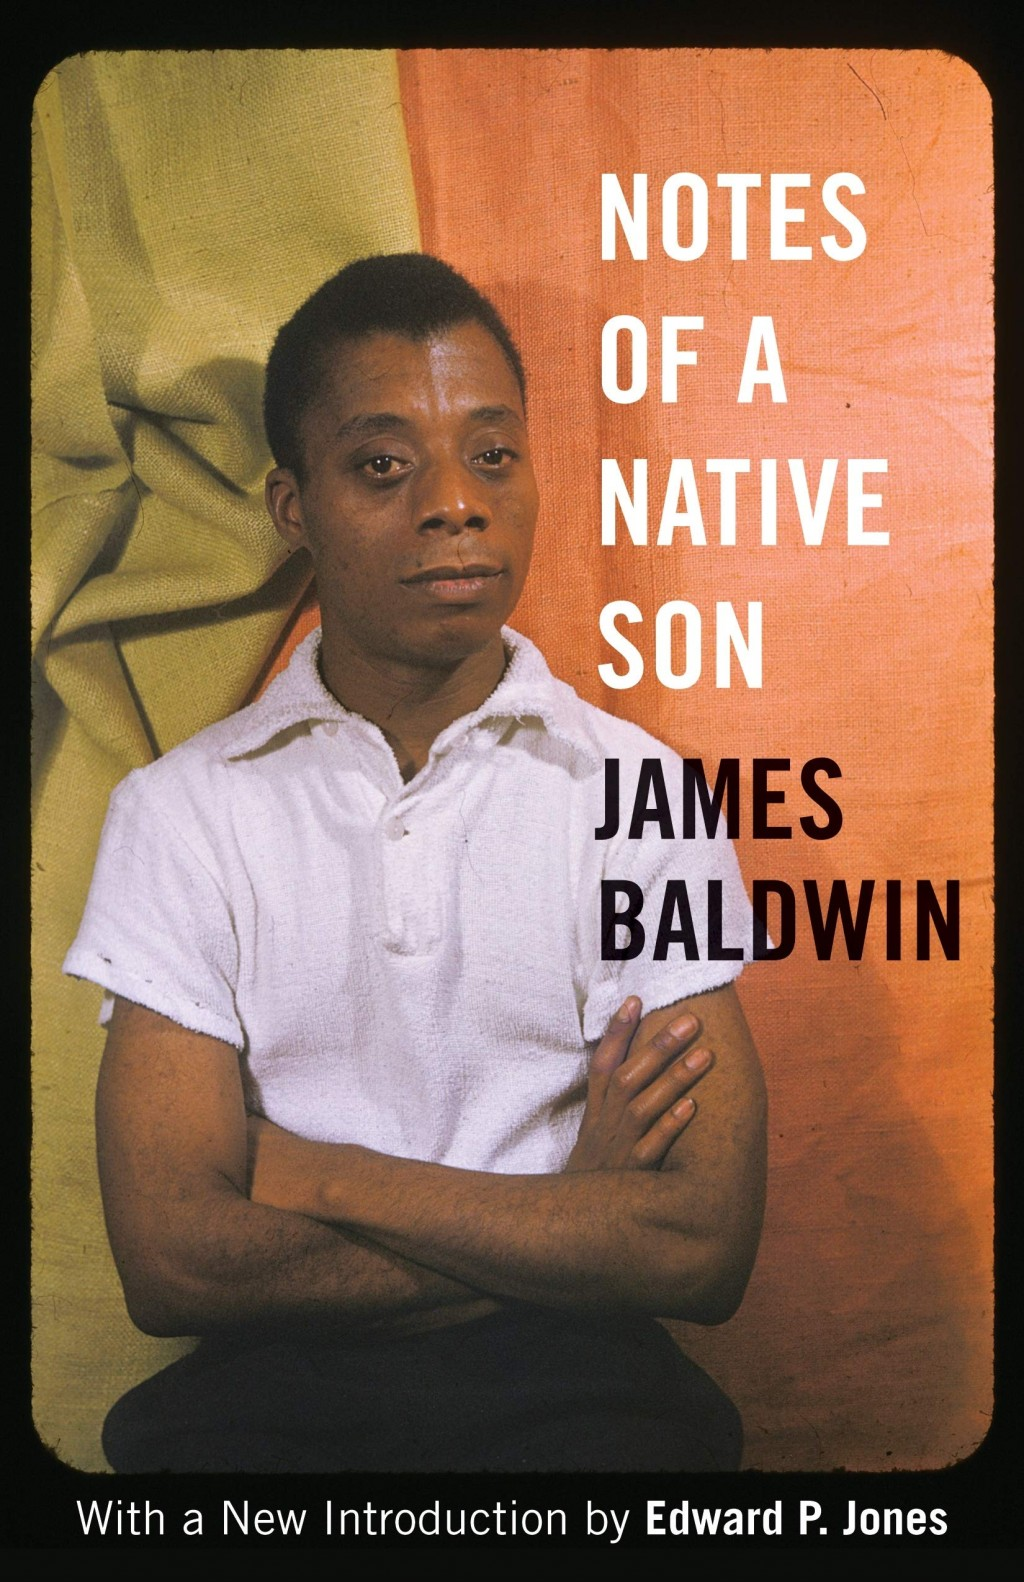 014 Essay Example 81exdnt0zvl James Baldwin Collected Wondrous Essays Table Of Contents Ebook Google Books Large